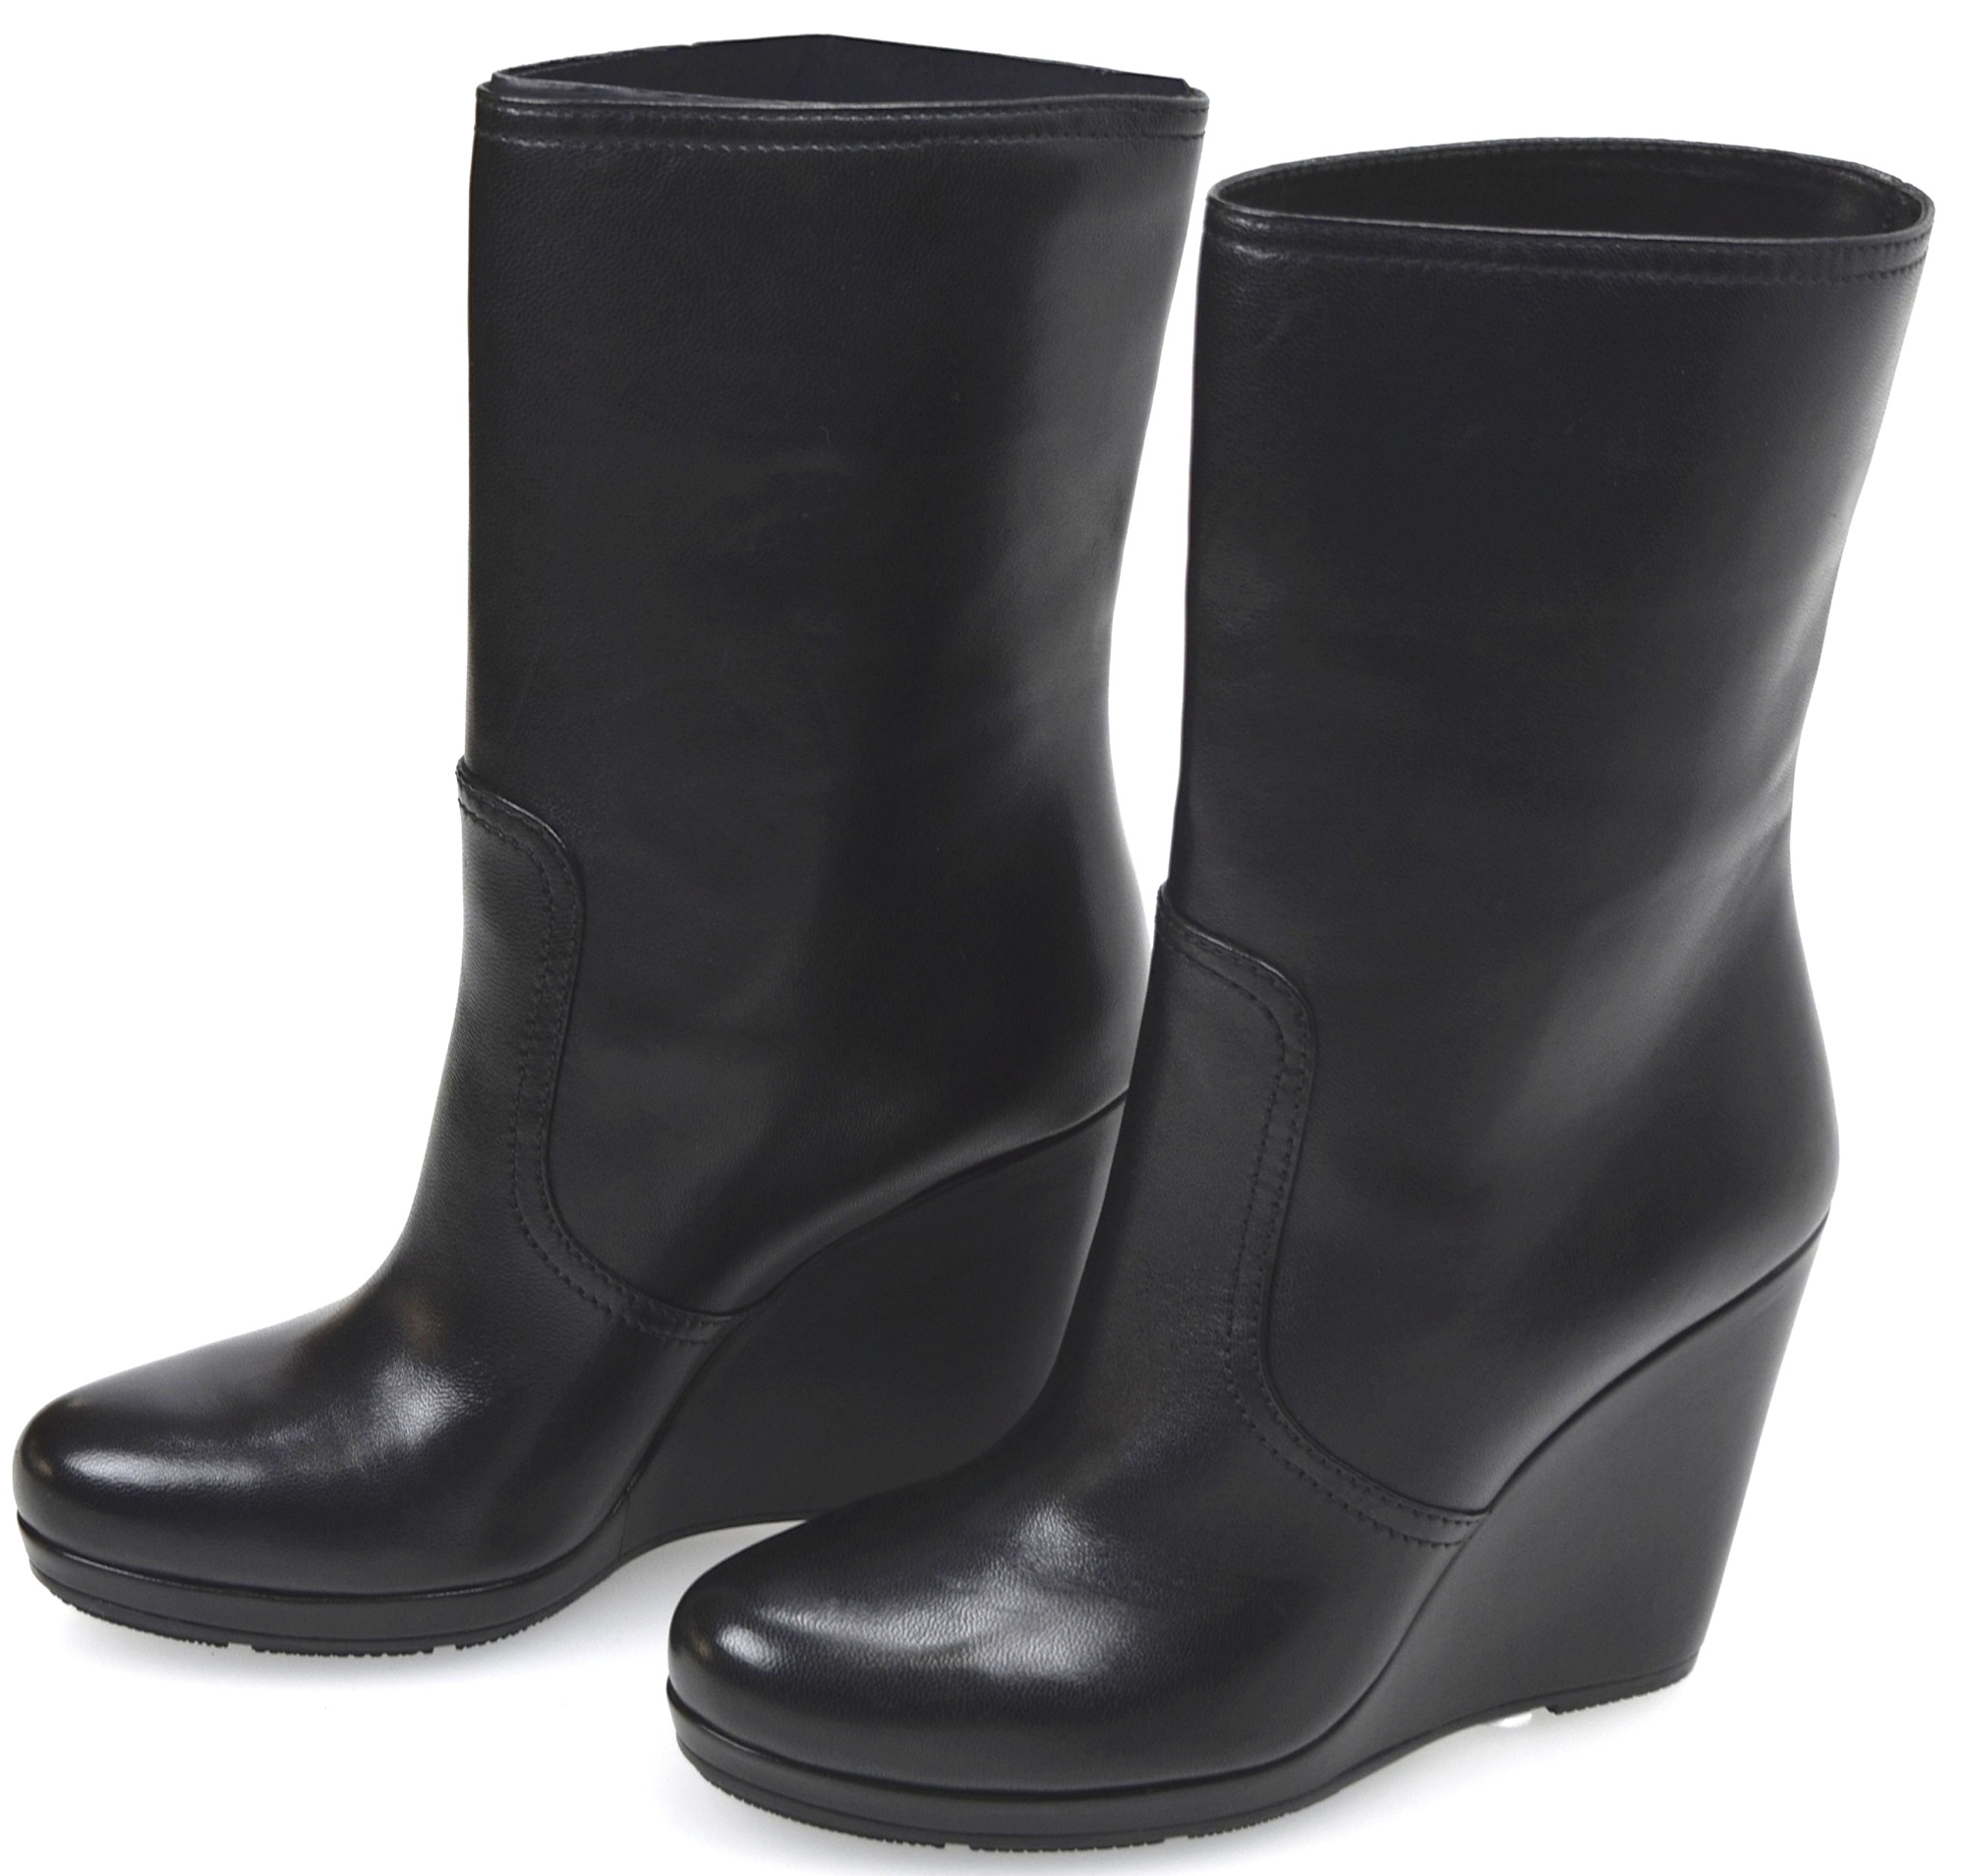 af165aa899 Details about PRADA WOMAN ANKLE BOOTS BOOTIES WITH WEDGE WINTER LEATHER  CODE 3UZ005